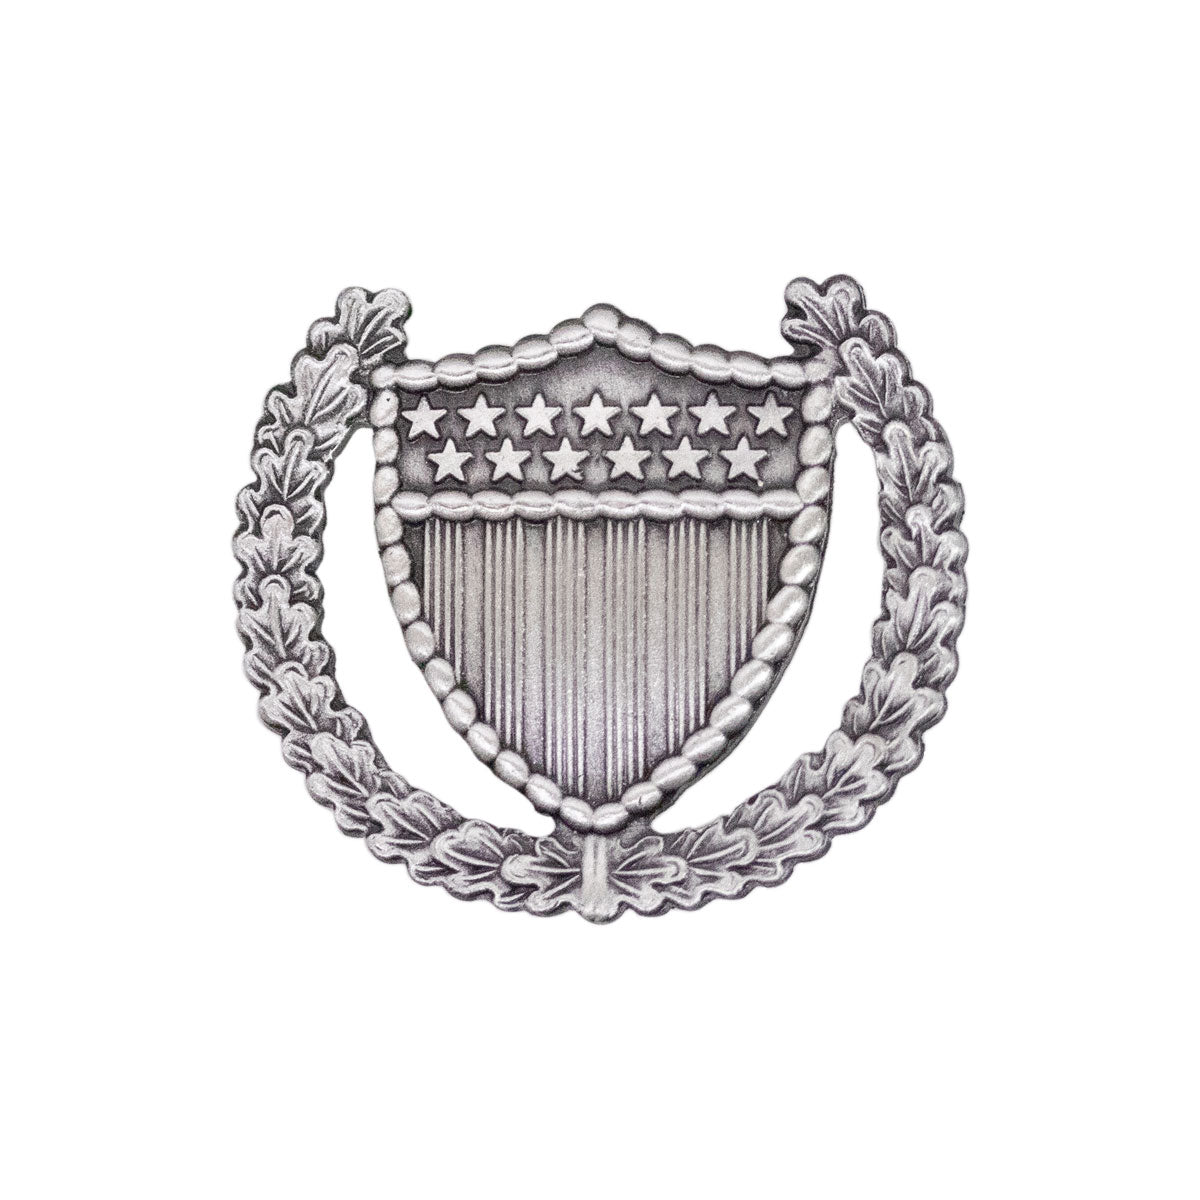 173rd airborne brigade shiny Silver plate dress belt buckle